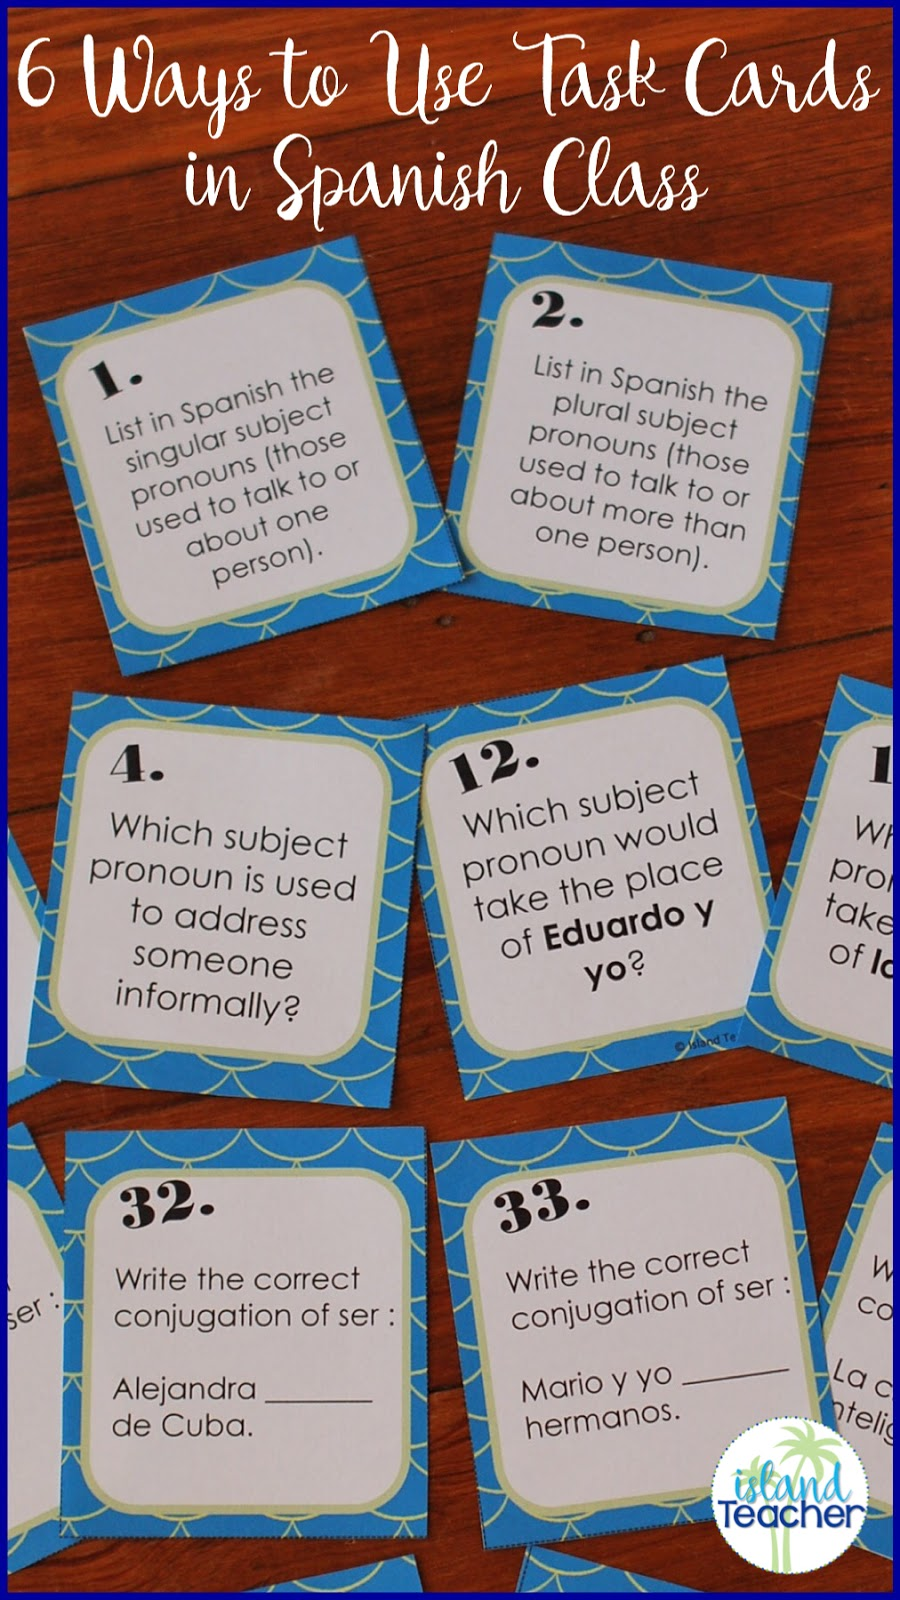 6 Ways To Use Task Cards In Spanish Class Island Teacher